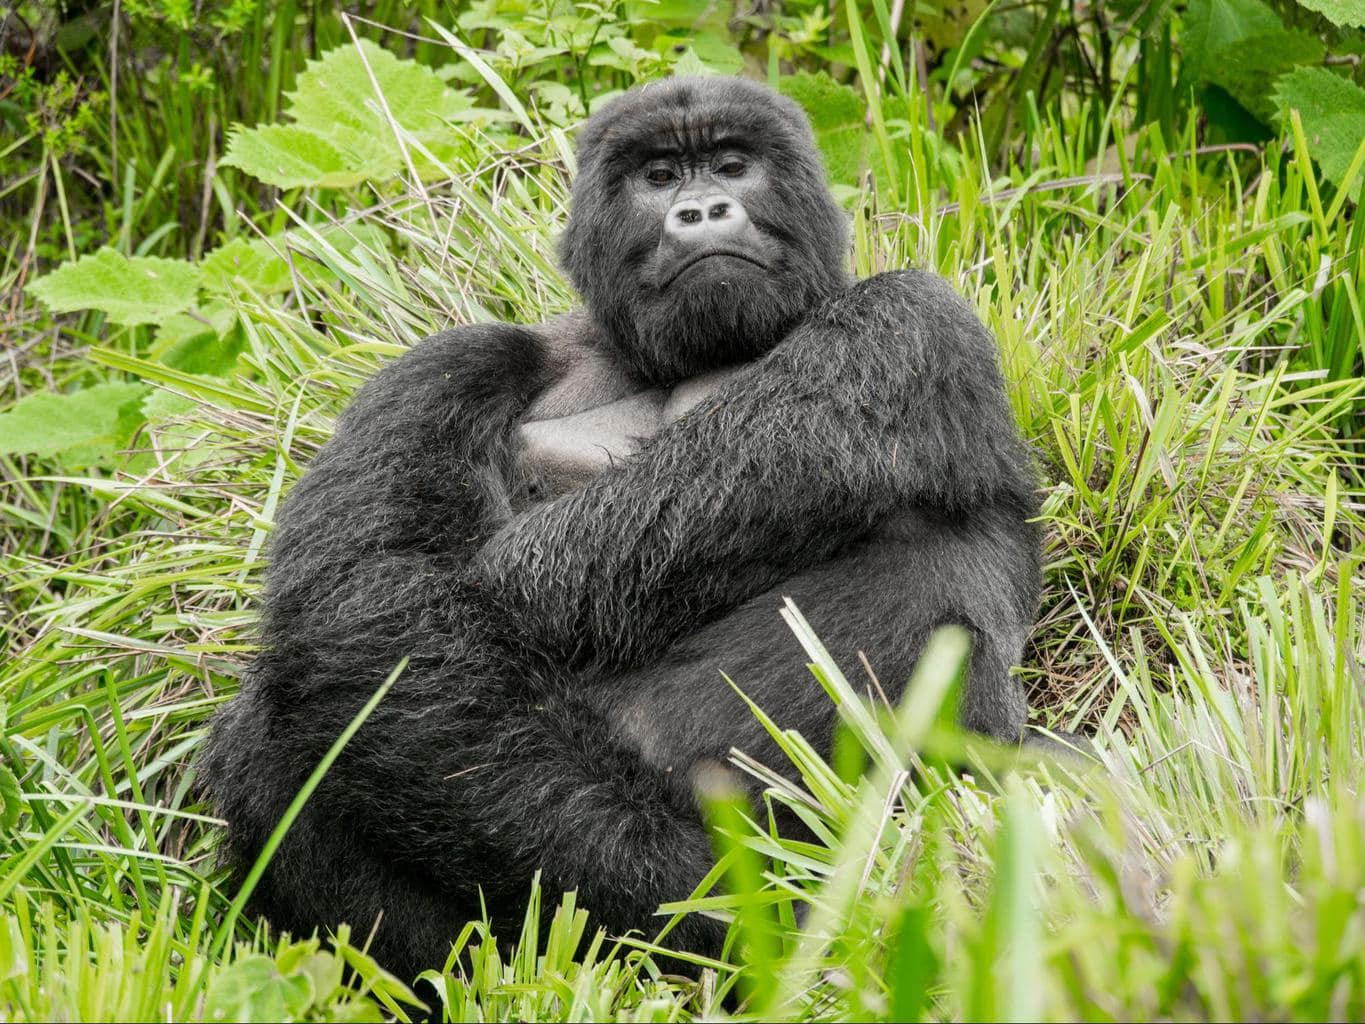 The silverback gorilla, imposing